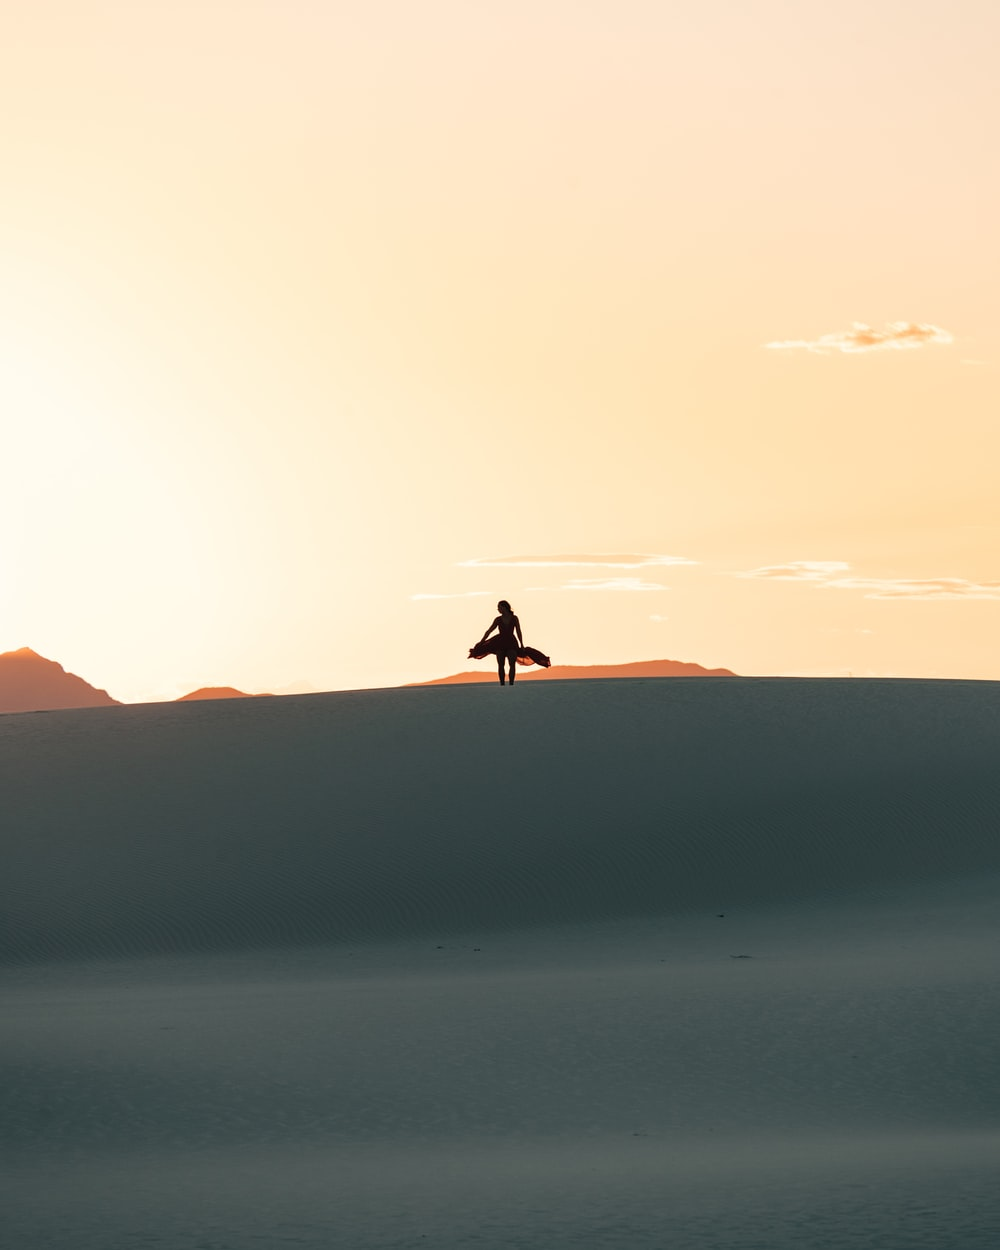 silhouette of person walking on desert during daytime